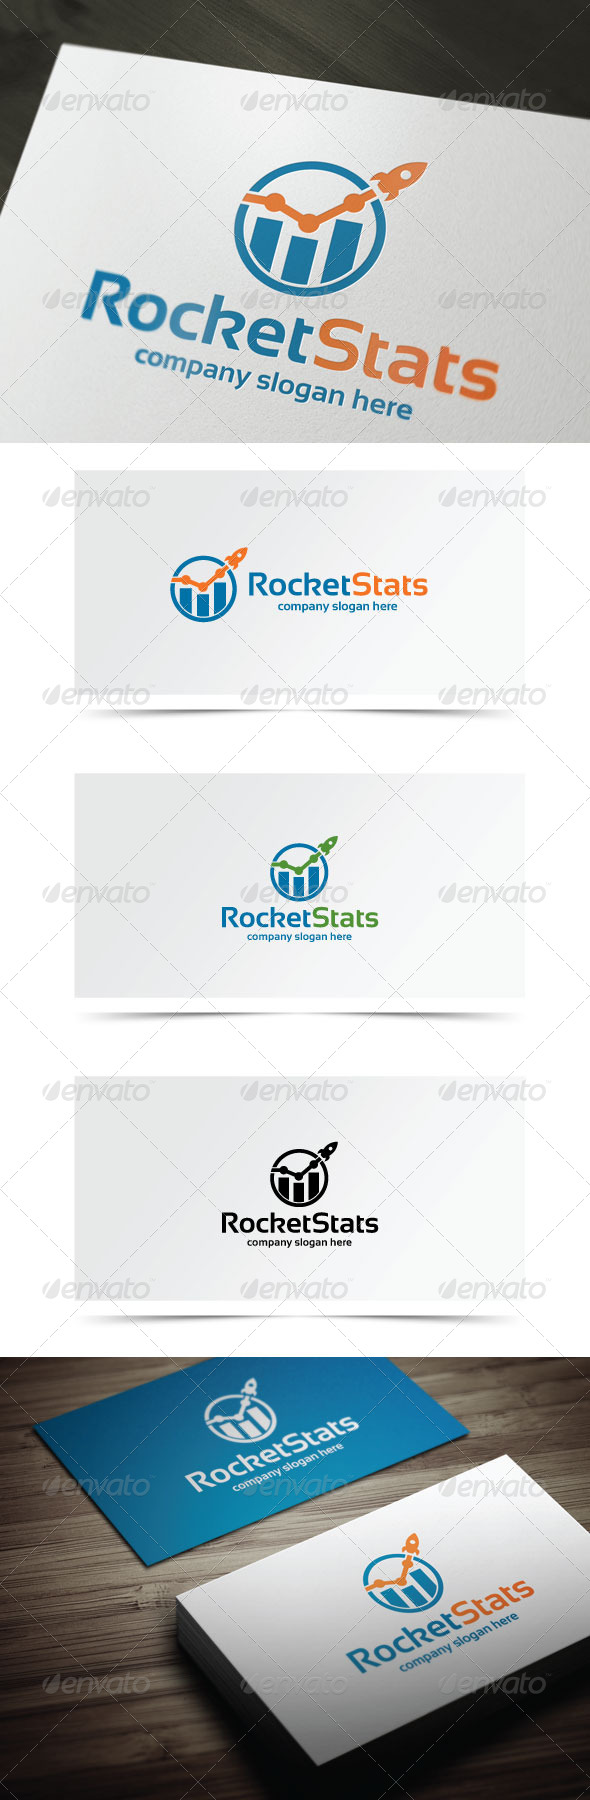 GraphicRiver Rocket Stats 7553926